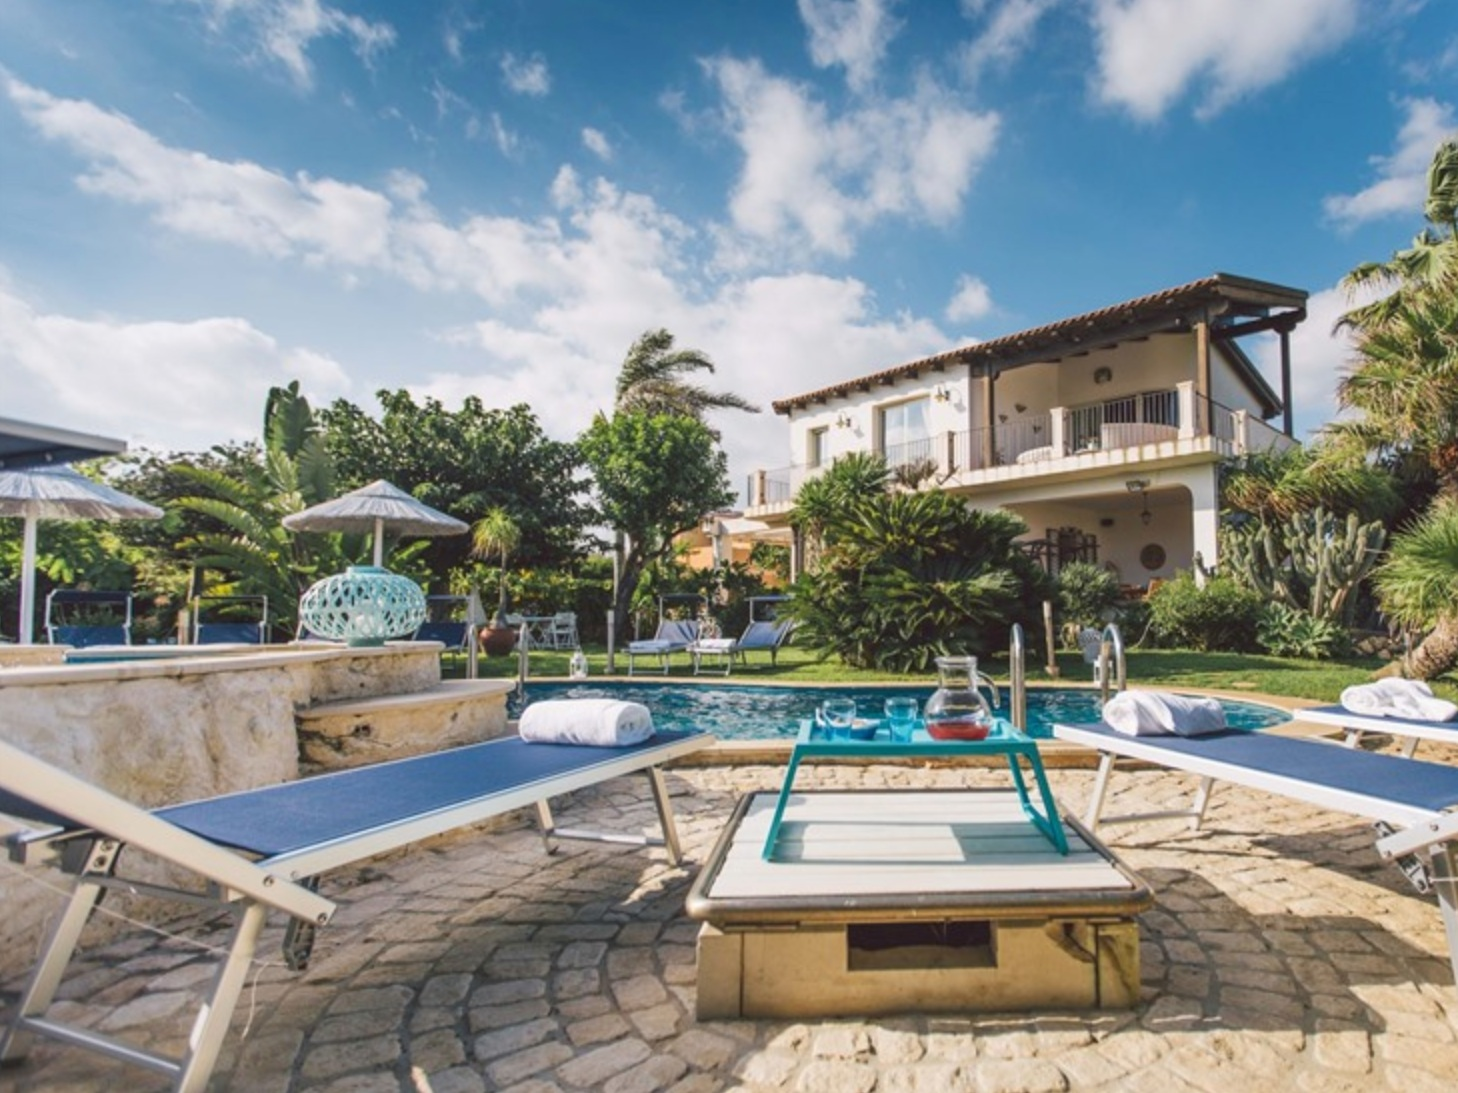 VILLA BY THE SEA - RAGUSA - 5 BEDROOMS - 3 BATHWEEKLY PRICE FROM €1,531